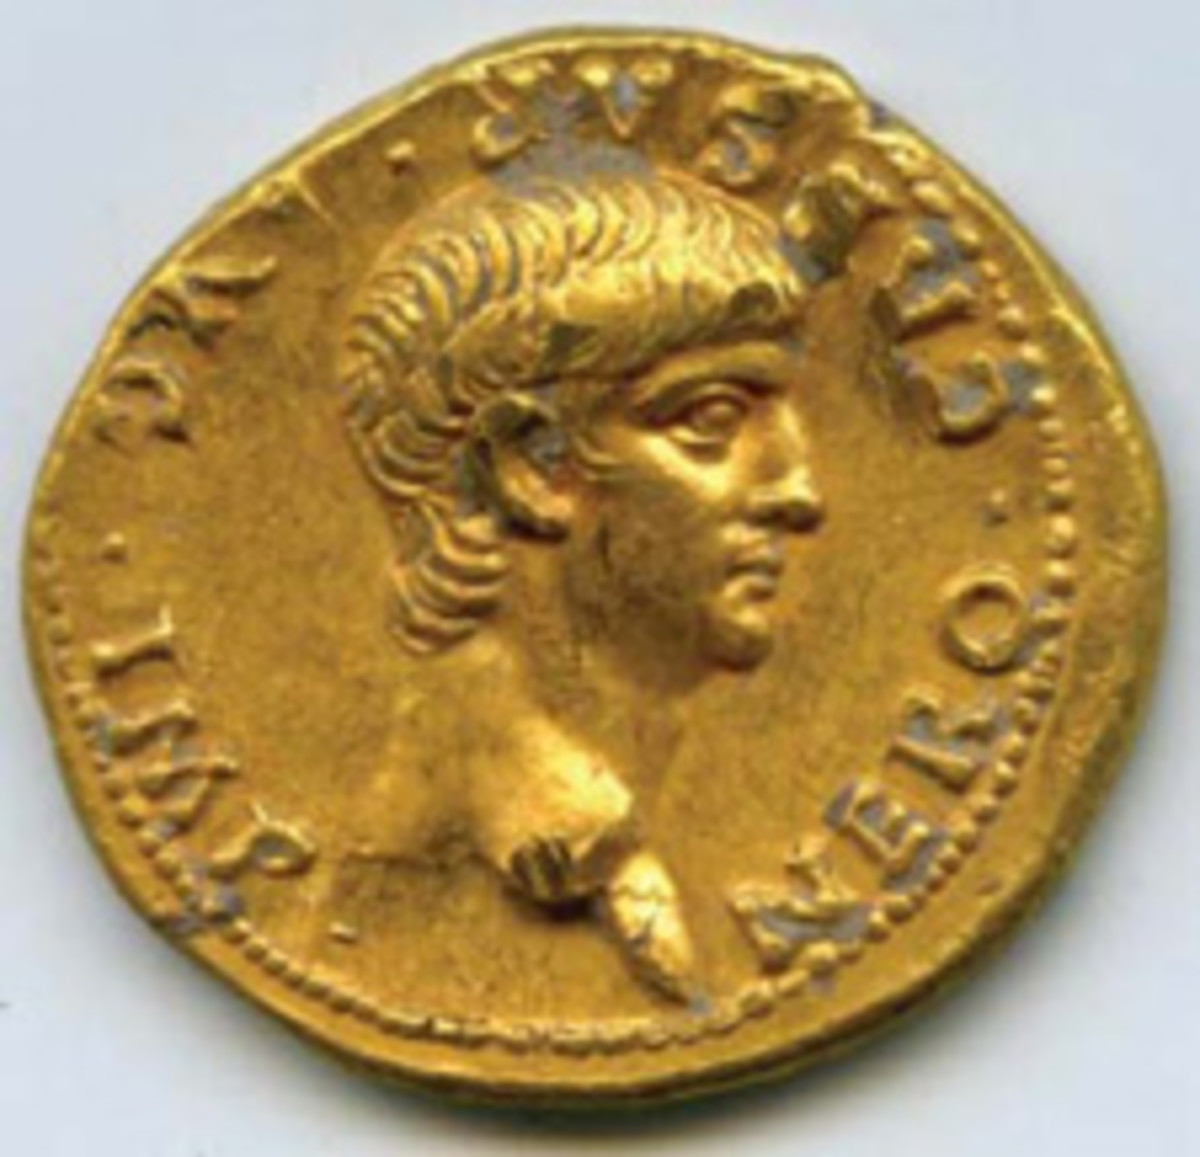 An ancient Roman gold aureus of the Emperor Nero was recently discovered at an archaeological site in Jerusalem.